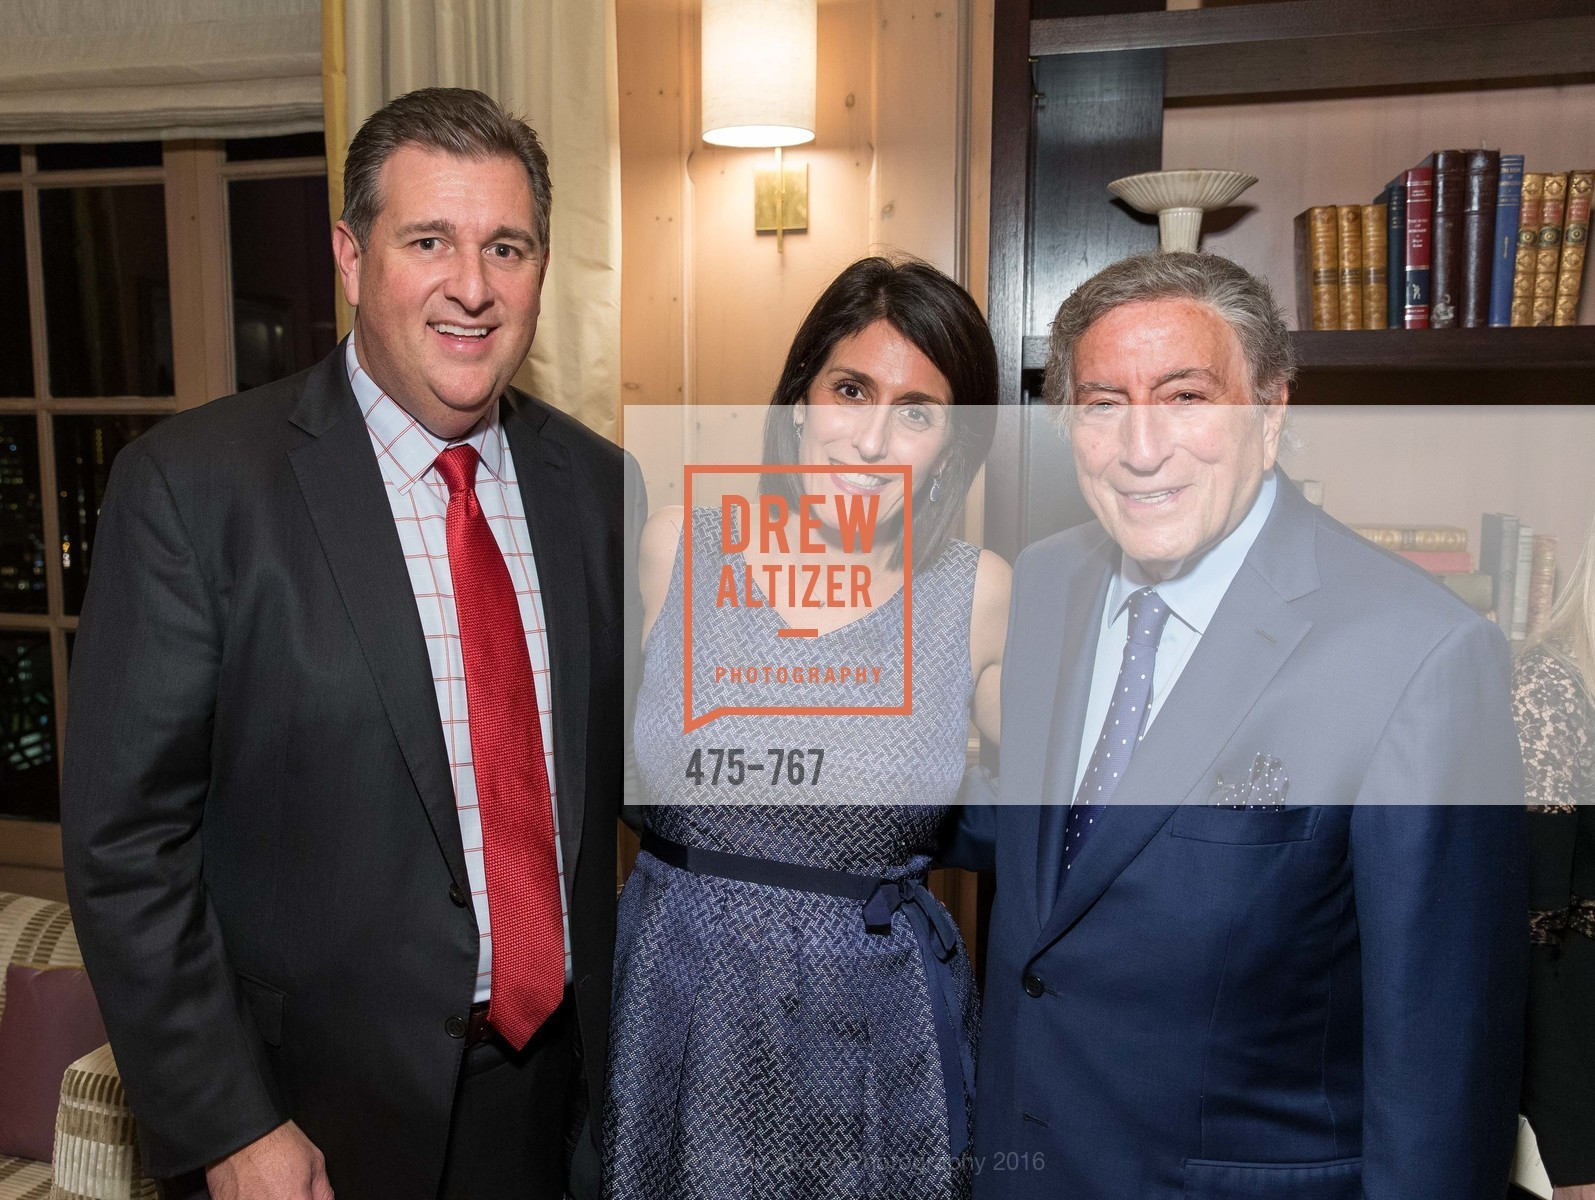 Stephen Revetria, Elizabeth Revetria, Tony Bennett, A Special Reception with Tony Bennett, The Fairmont, San Francisco, The Penthouse Suite, January 26th, 2016,Drew Altizer, Drew Altizer Photography, full-service agency, private events, San Francisco photographer, photographer california